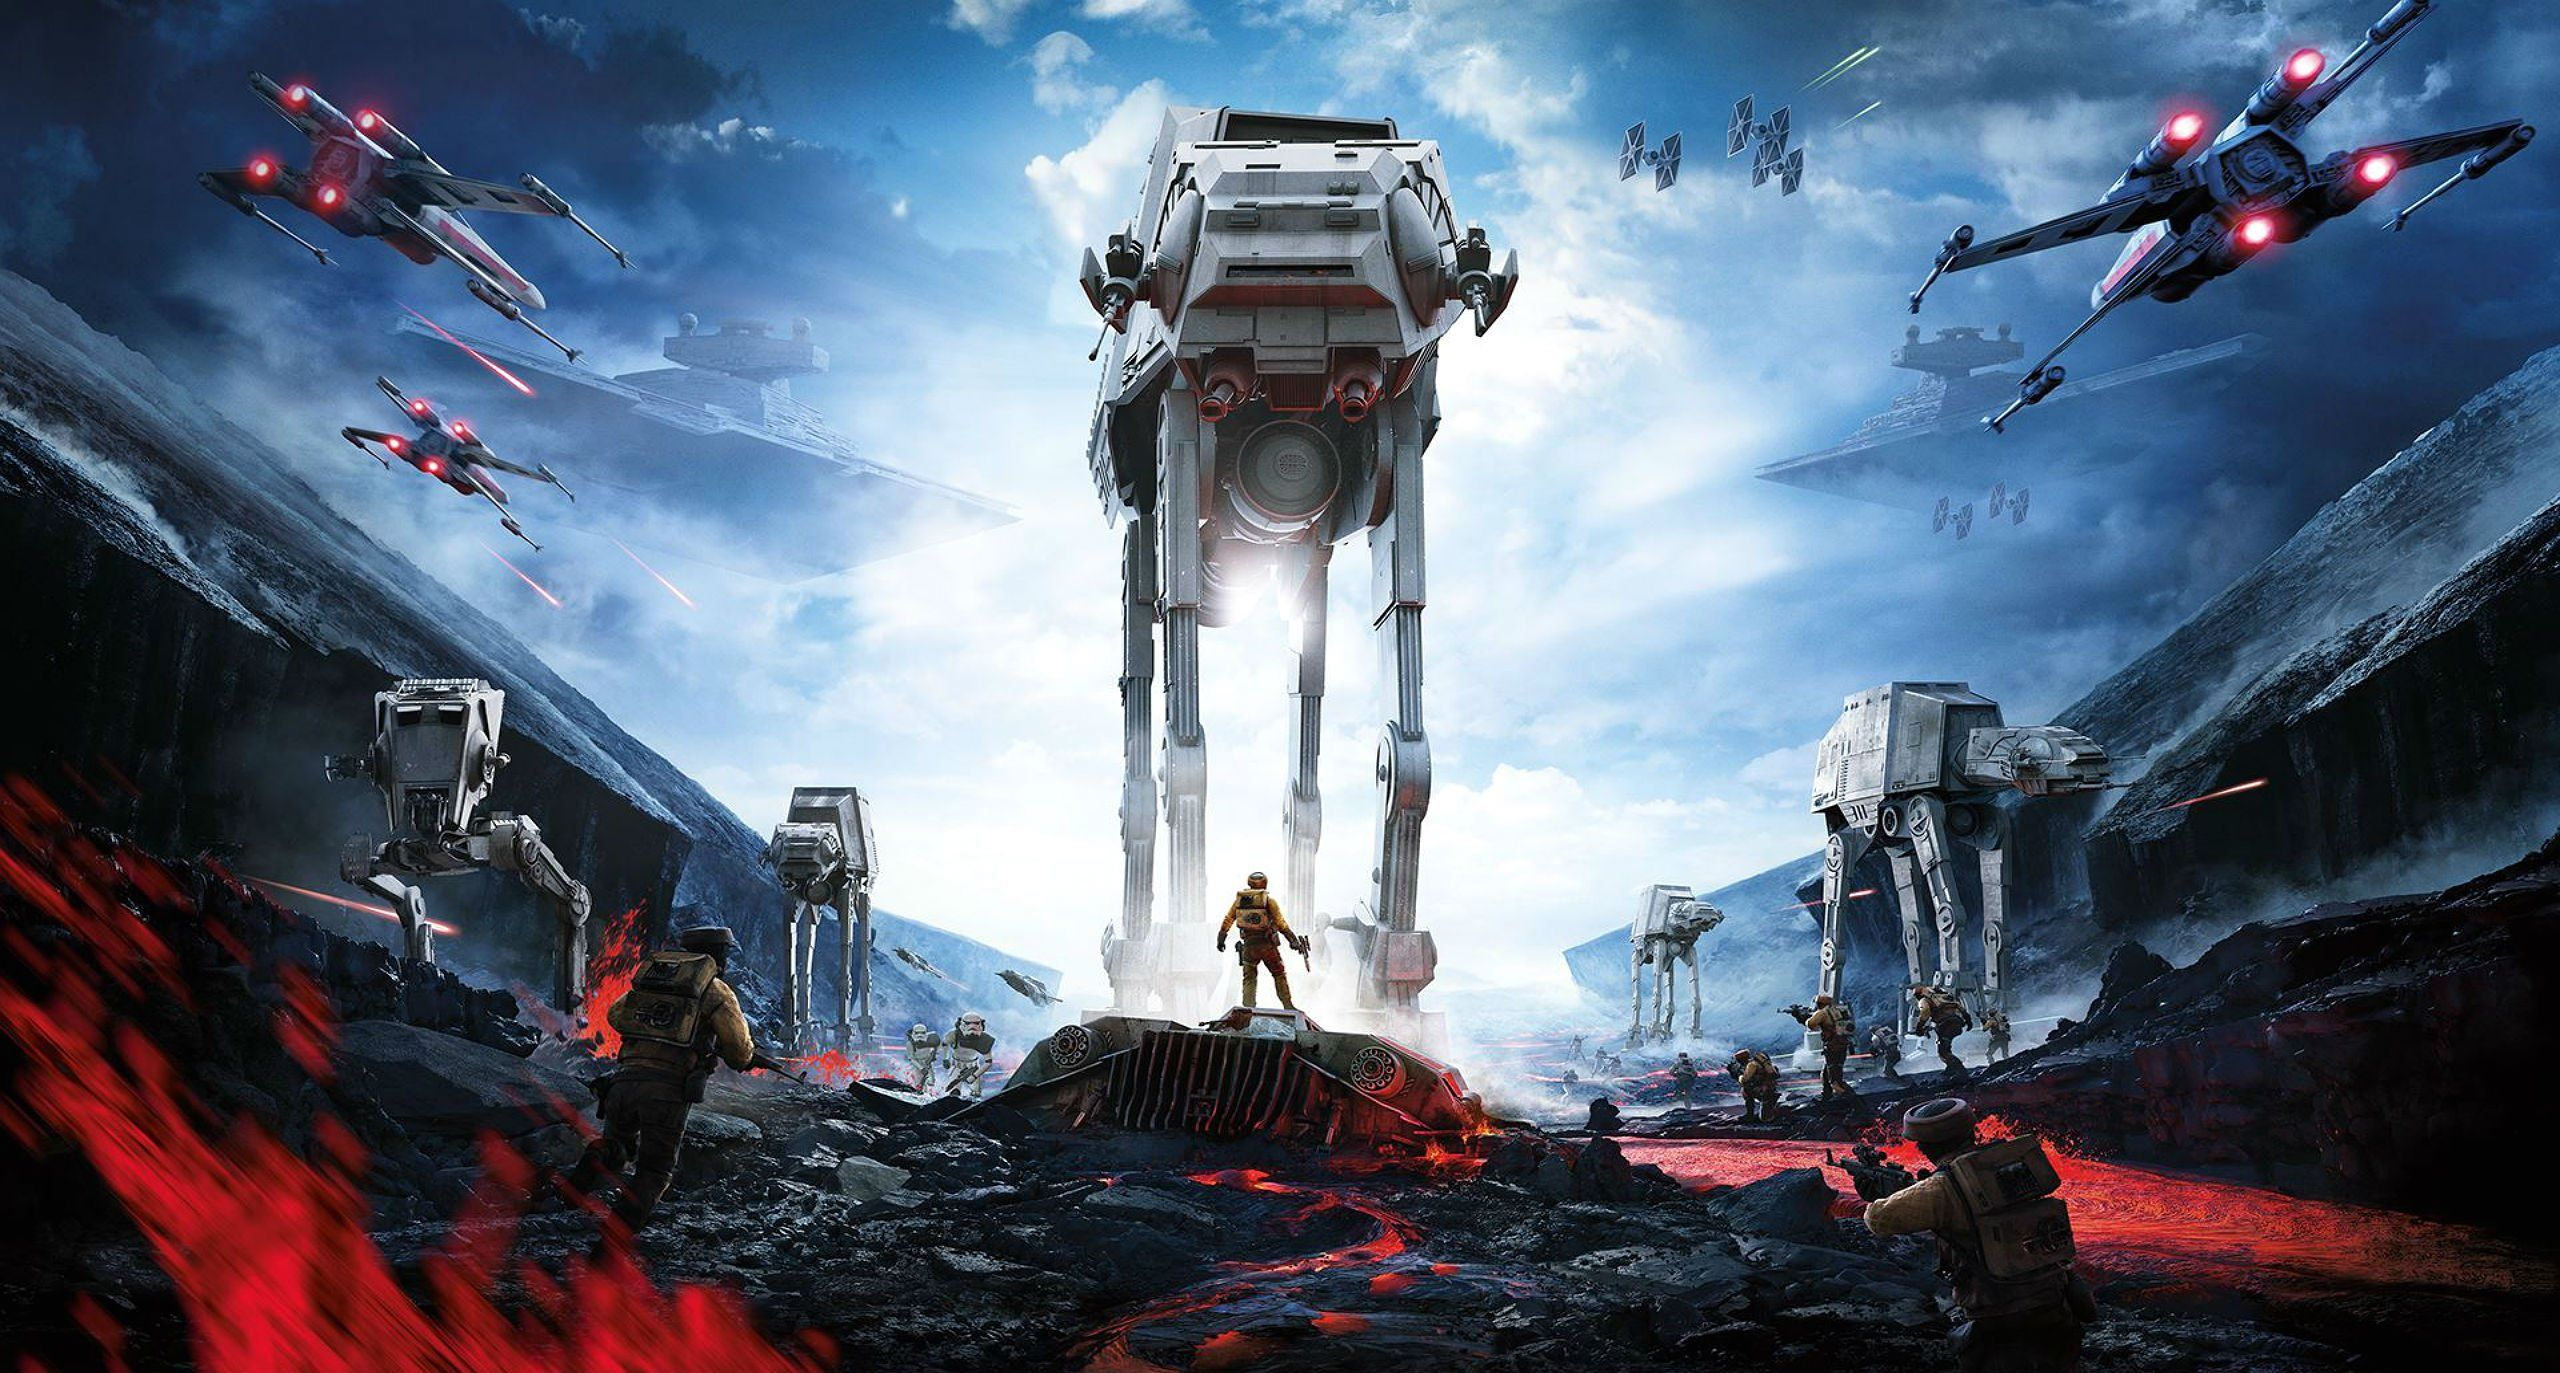 Star Wars Battlefront Wallpapers Top Free Star Wars Battlefront